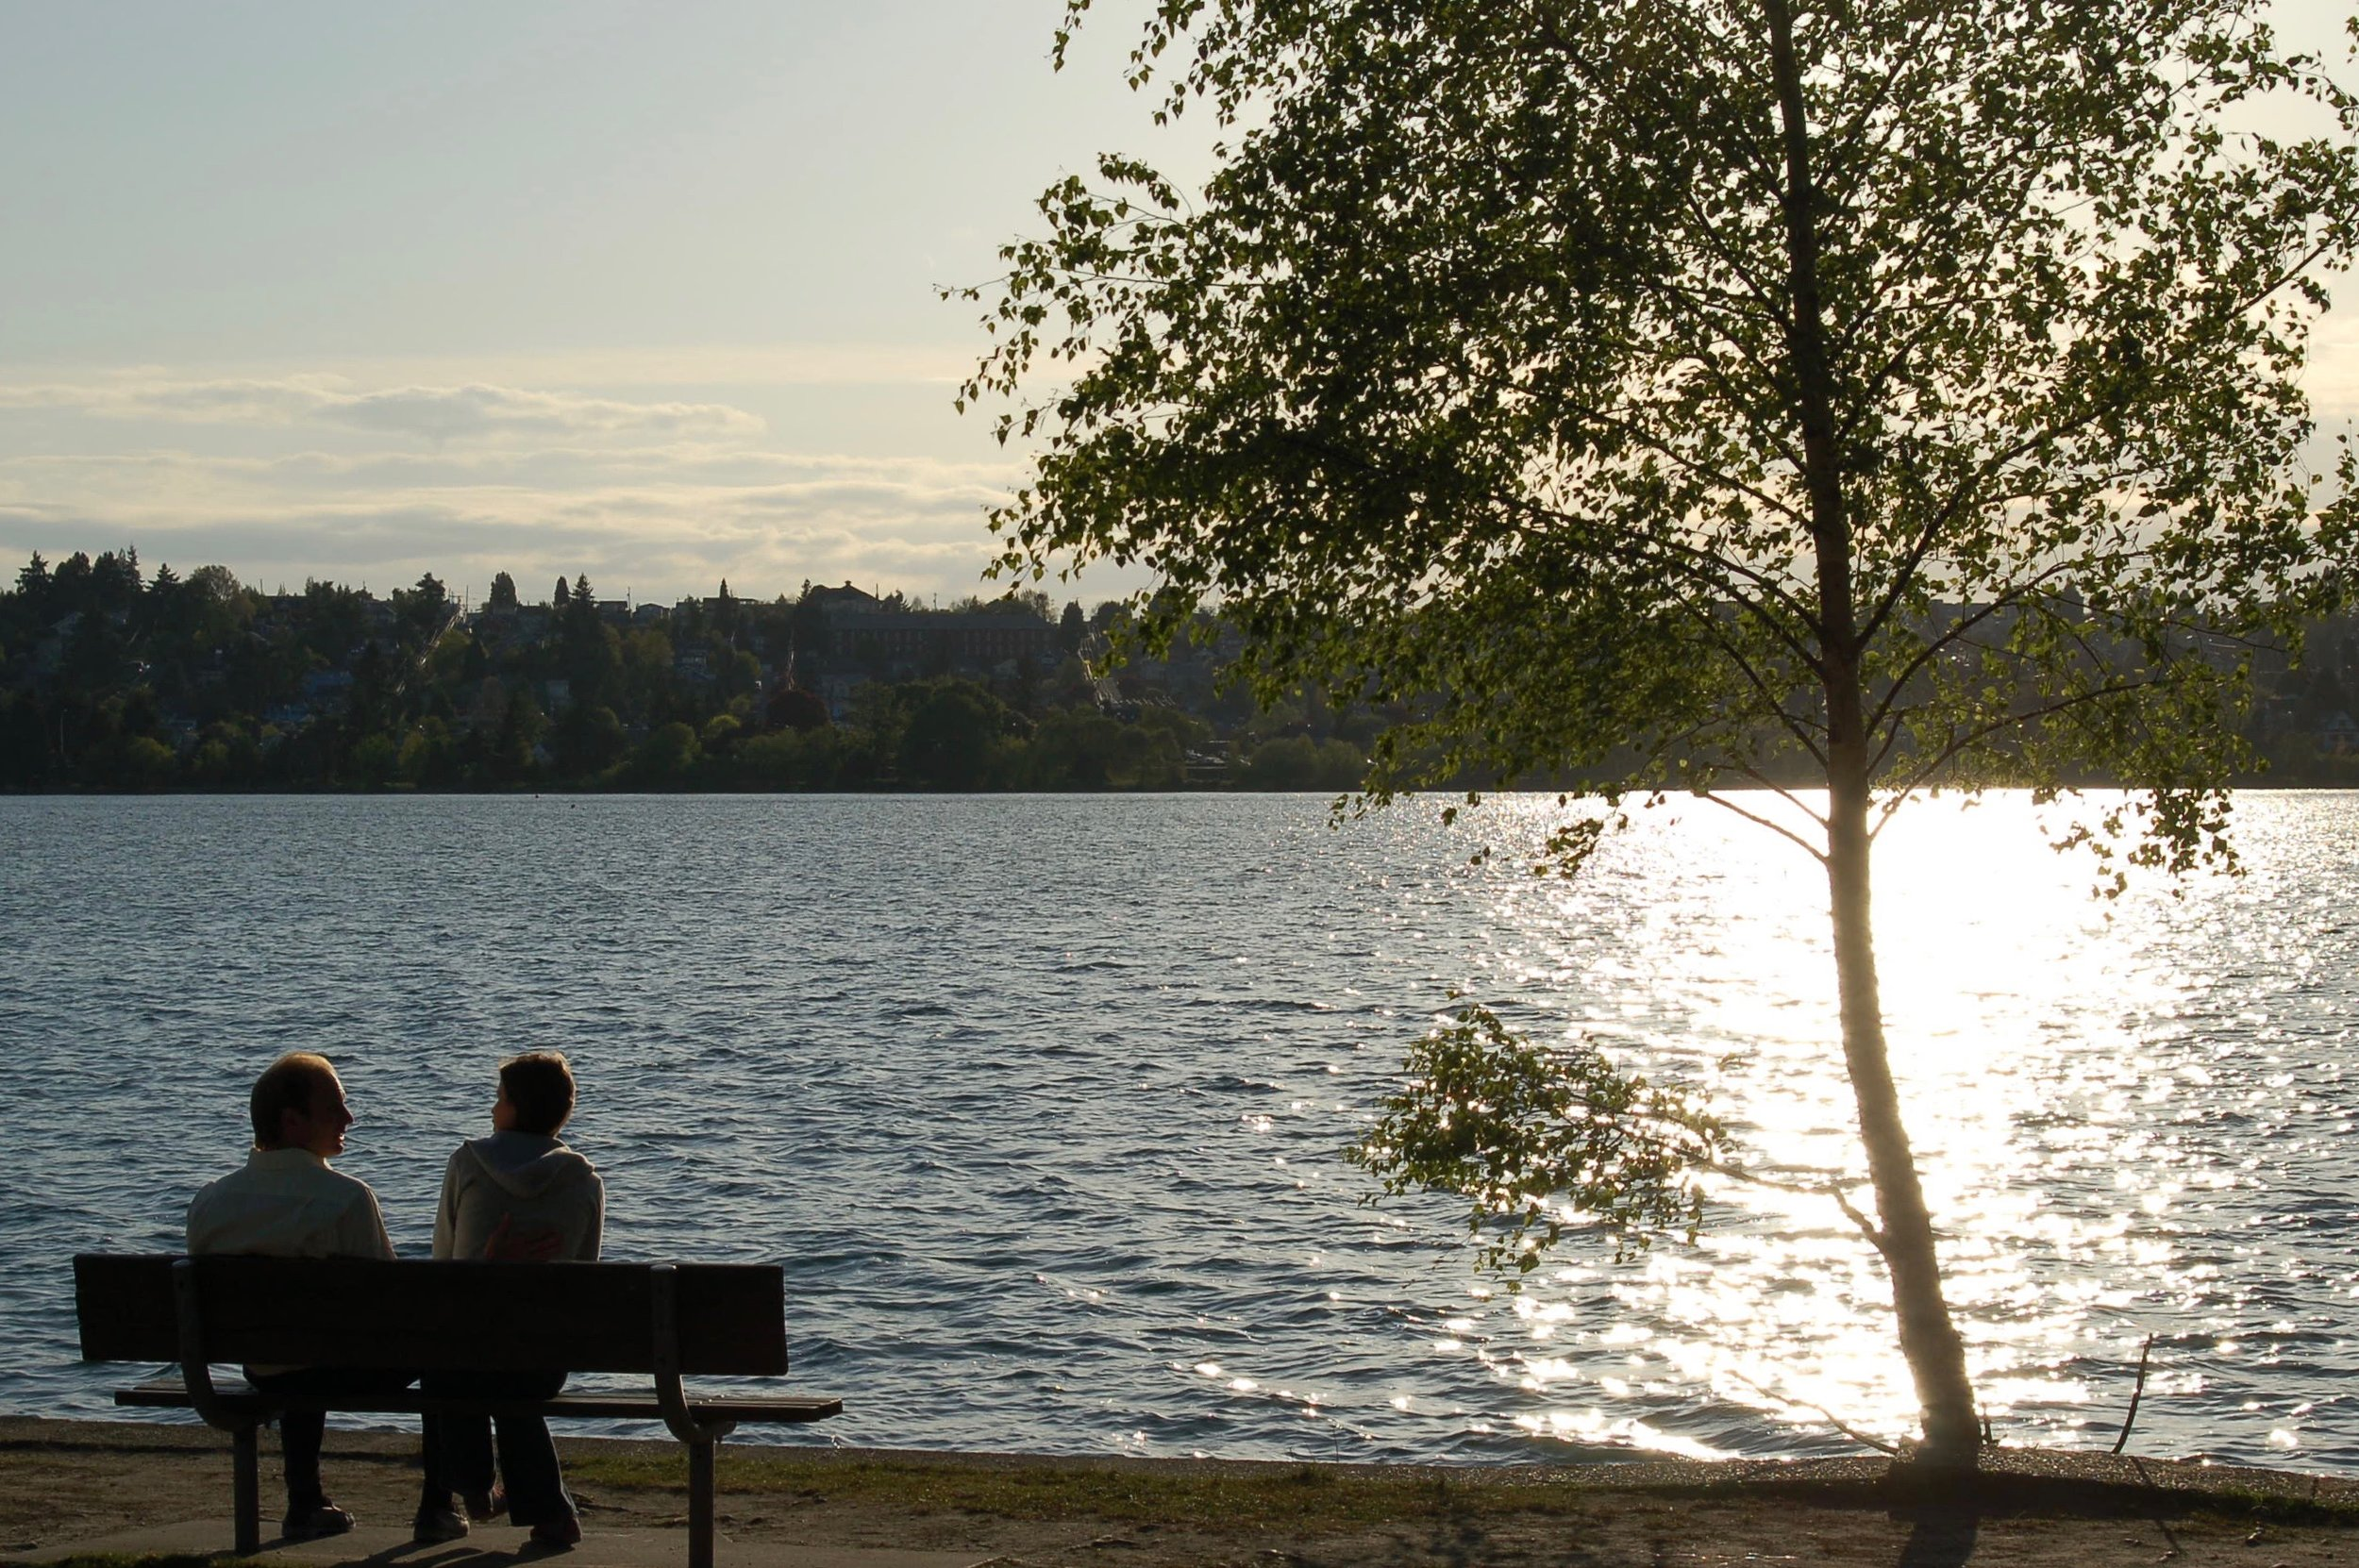 Greenlake: The place of my destiny